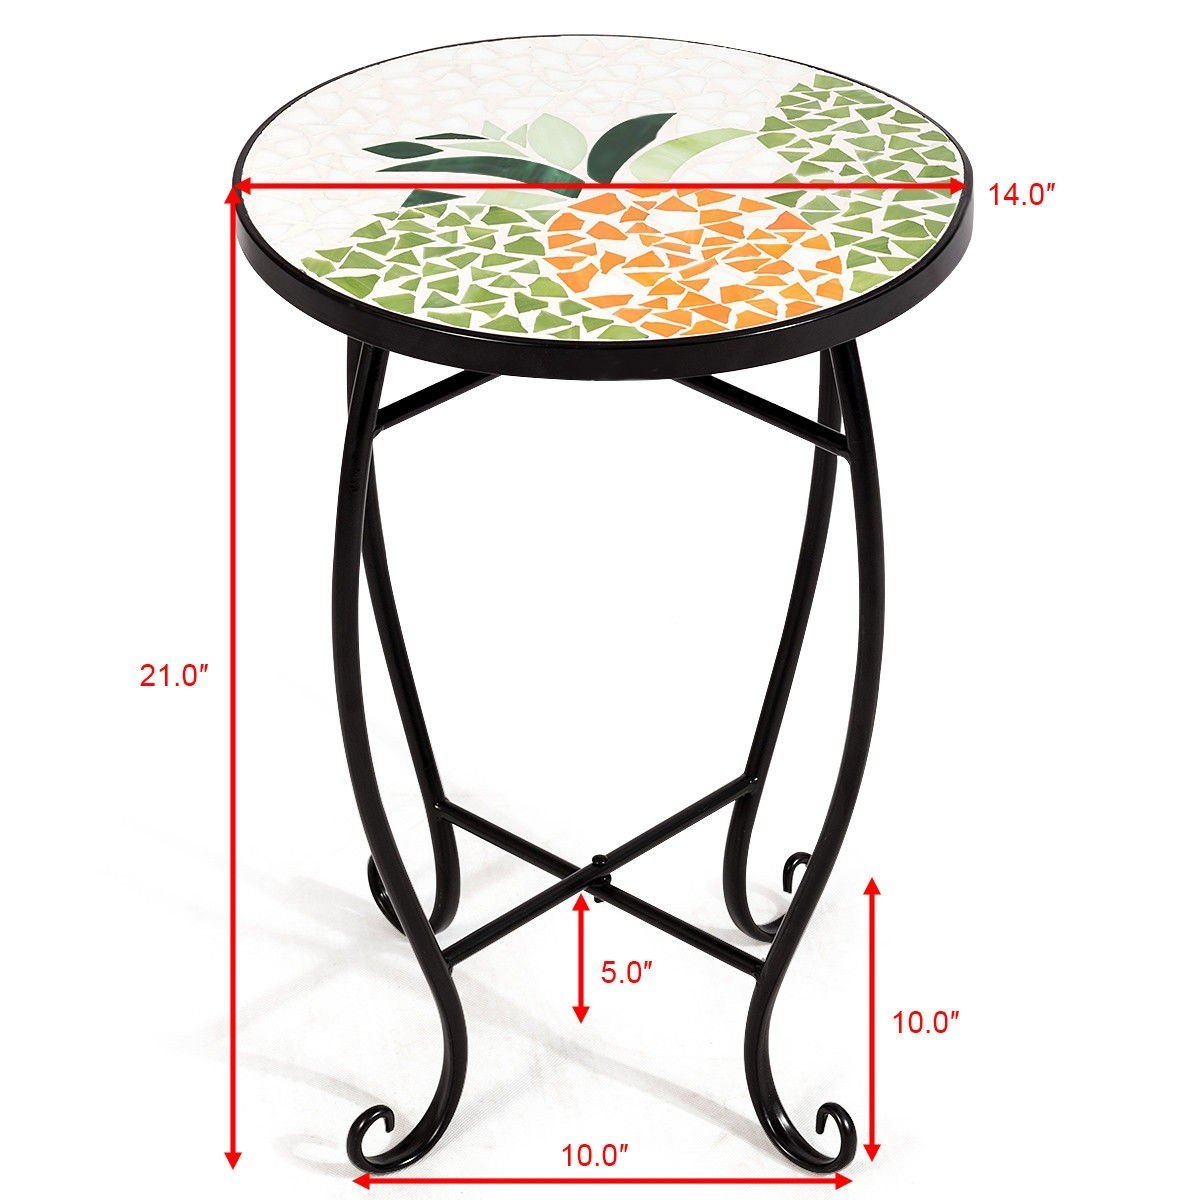 custpromo mosaic accent table metal round side glass plant stand cobalt top indoor outdoor garden patio sweet pineapple kitchen heat resistant cloth sea themed lamps pool